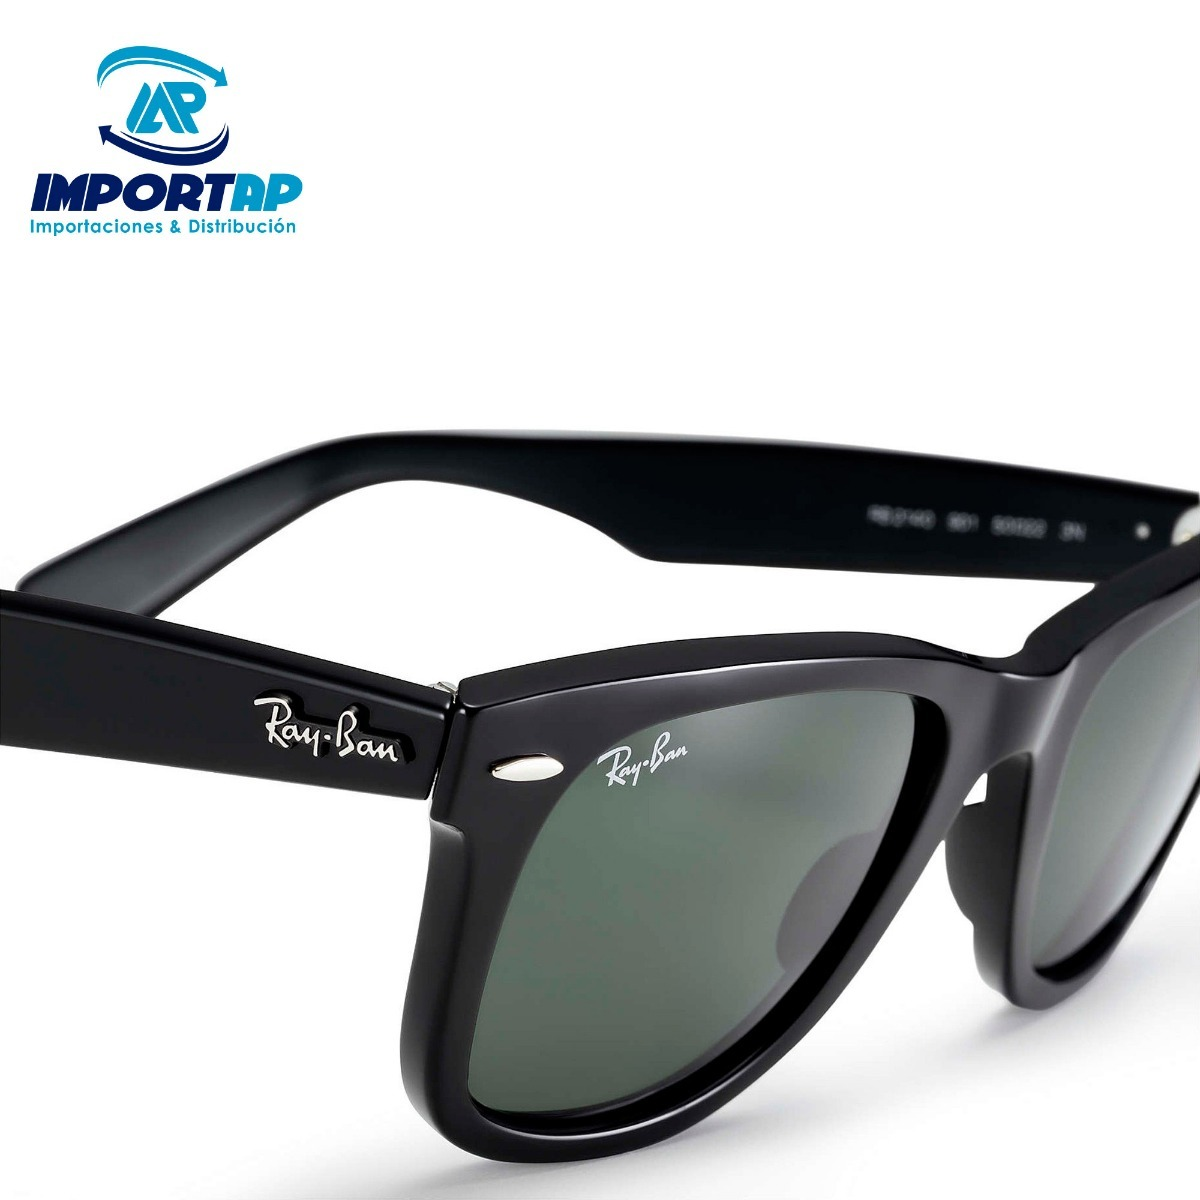 Lentes Ray Ban Original Wayfarer Polarized - S  599,00 en Mercado Libre f231cd2270